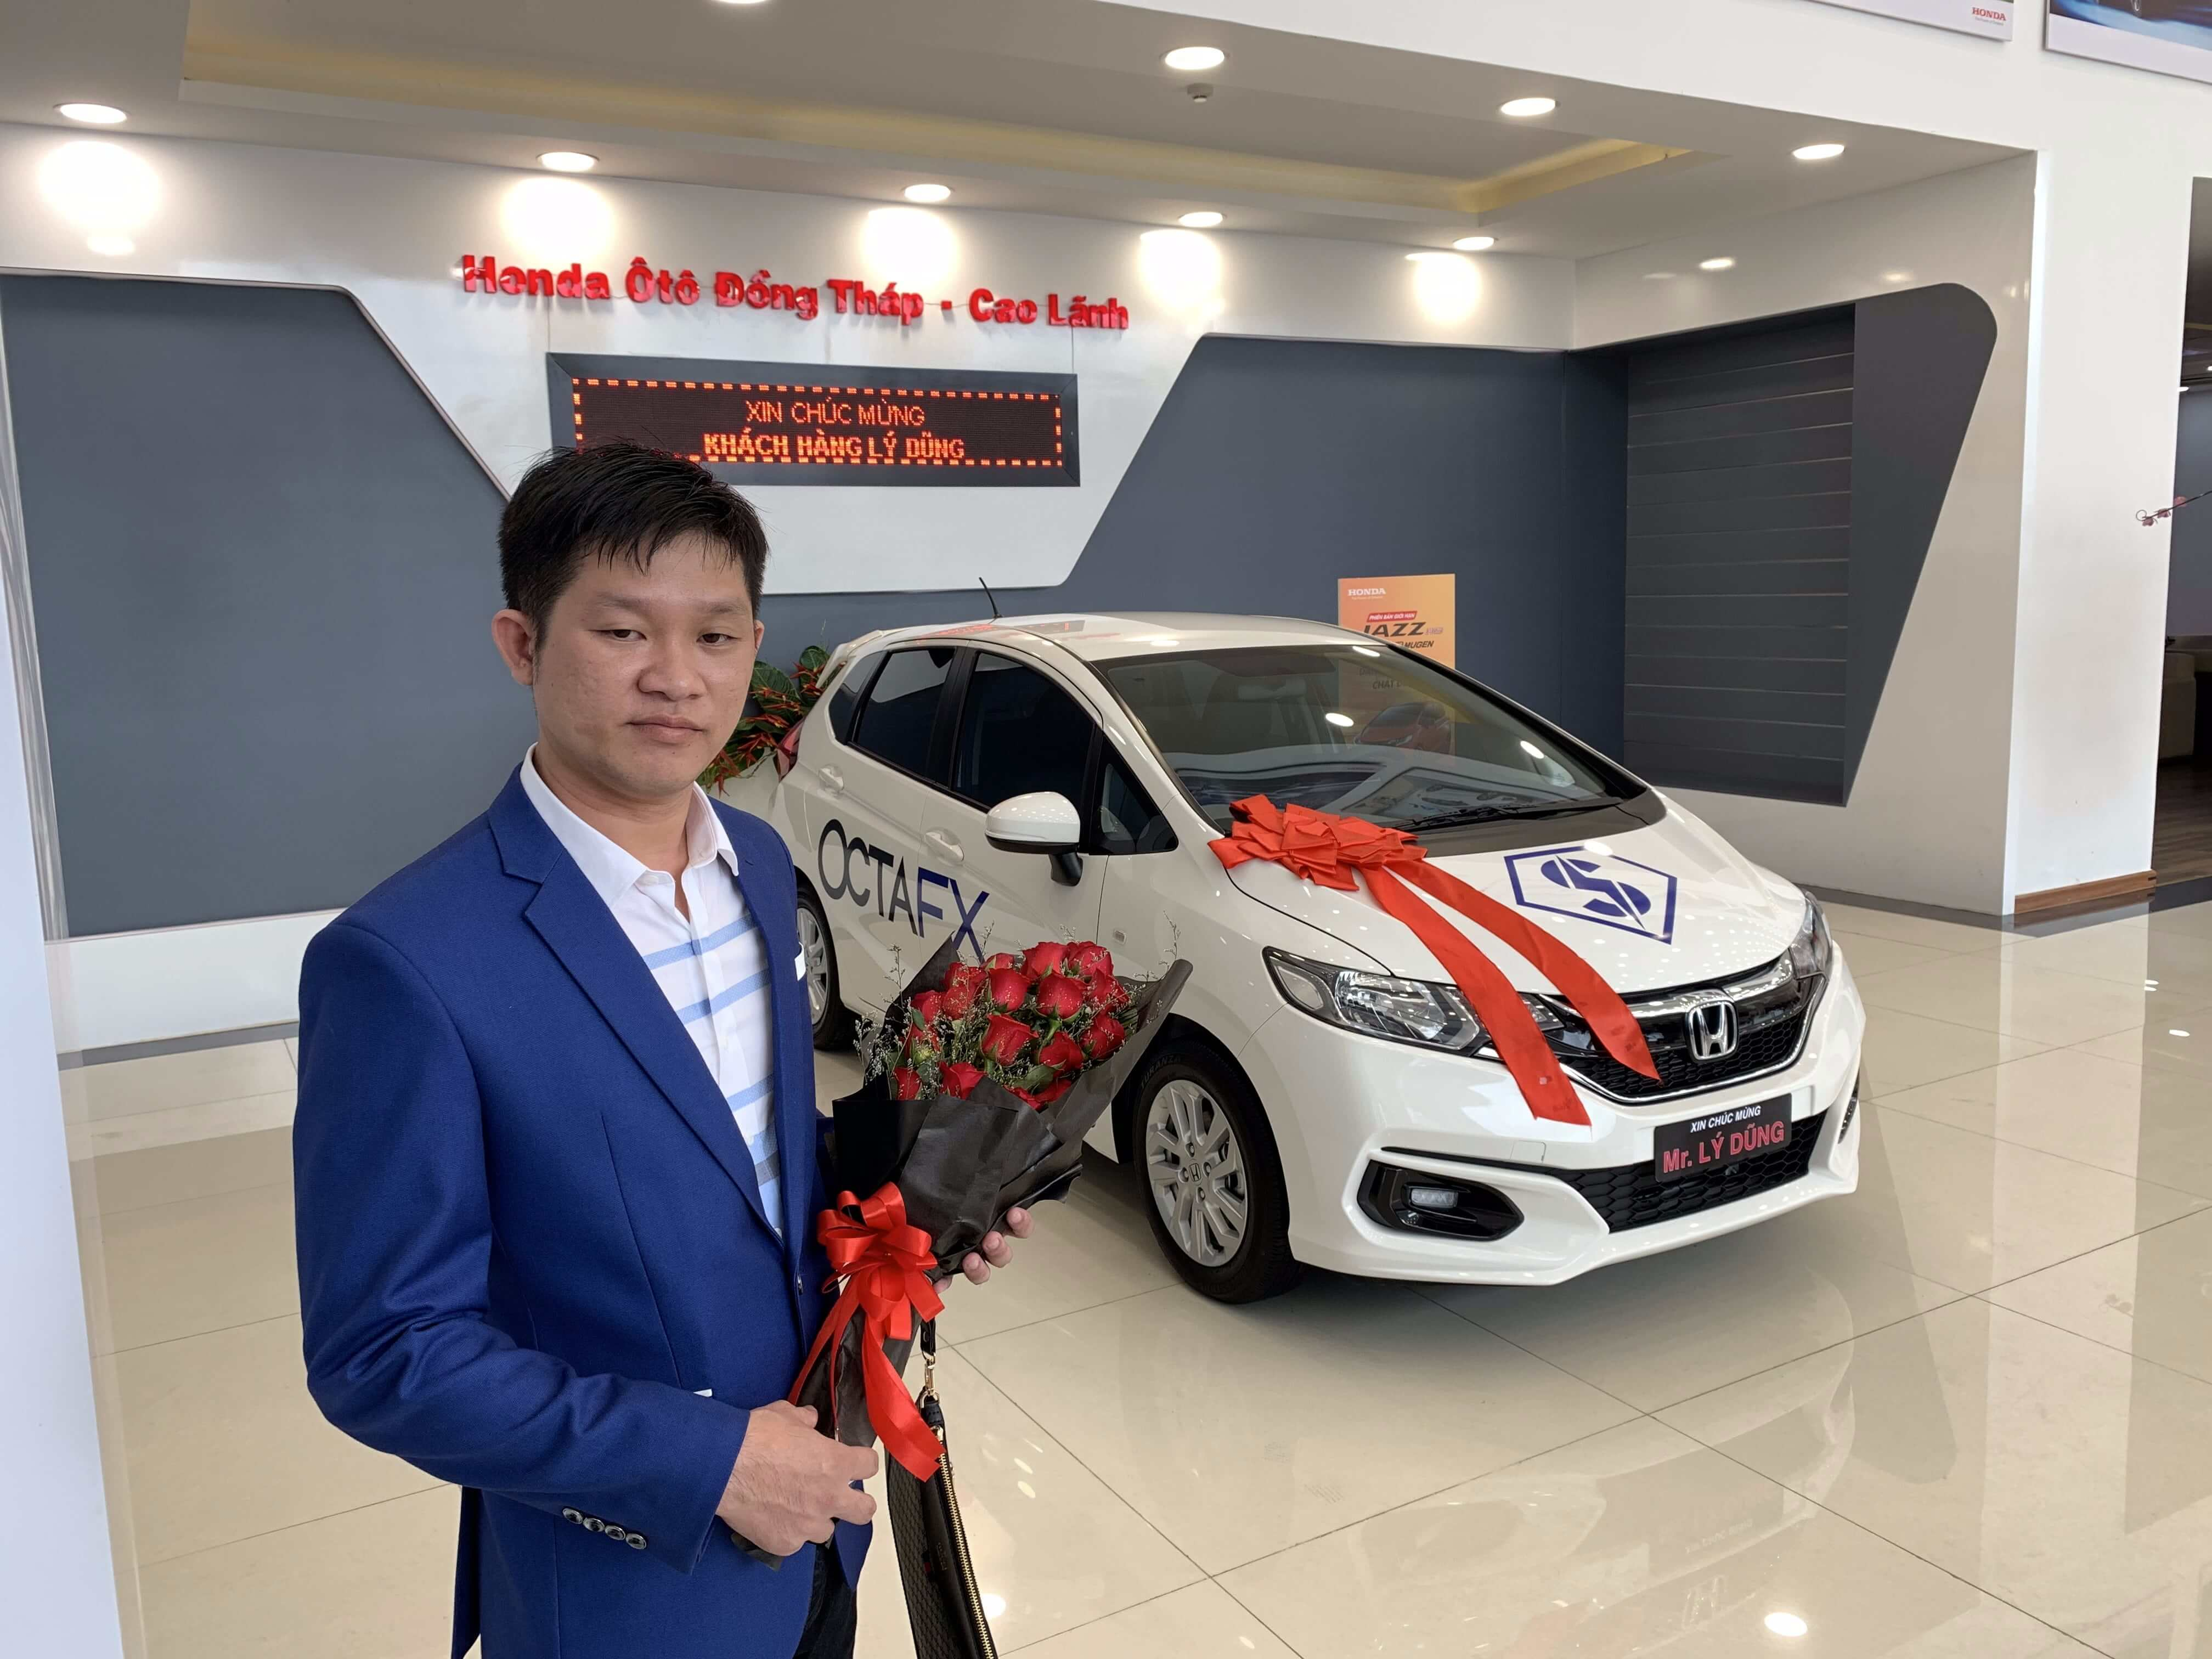 Supercharged 2 for IB: Honda first winner